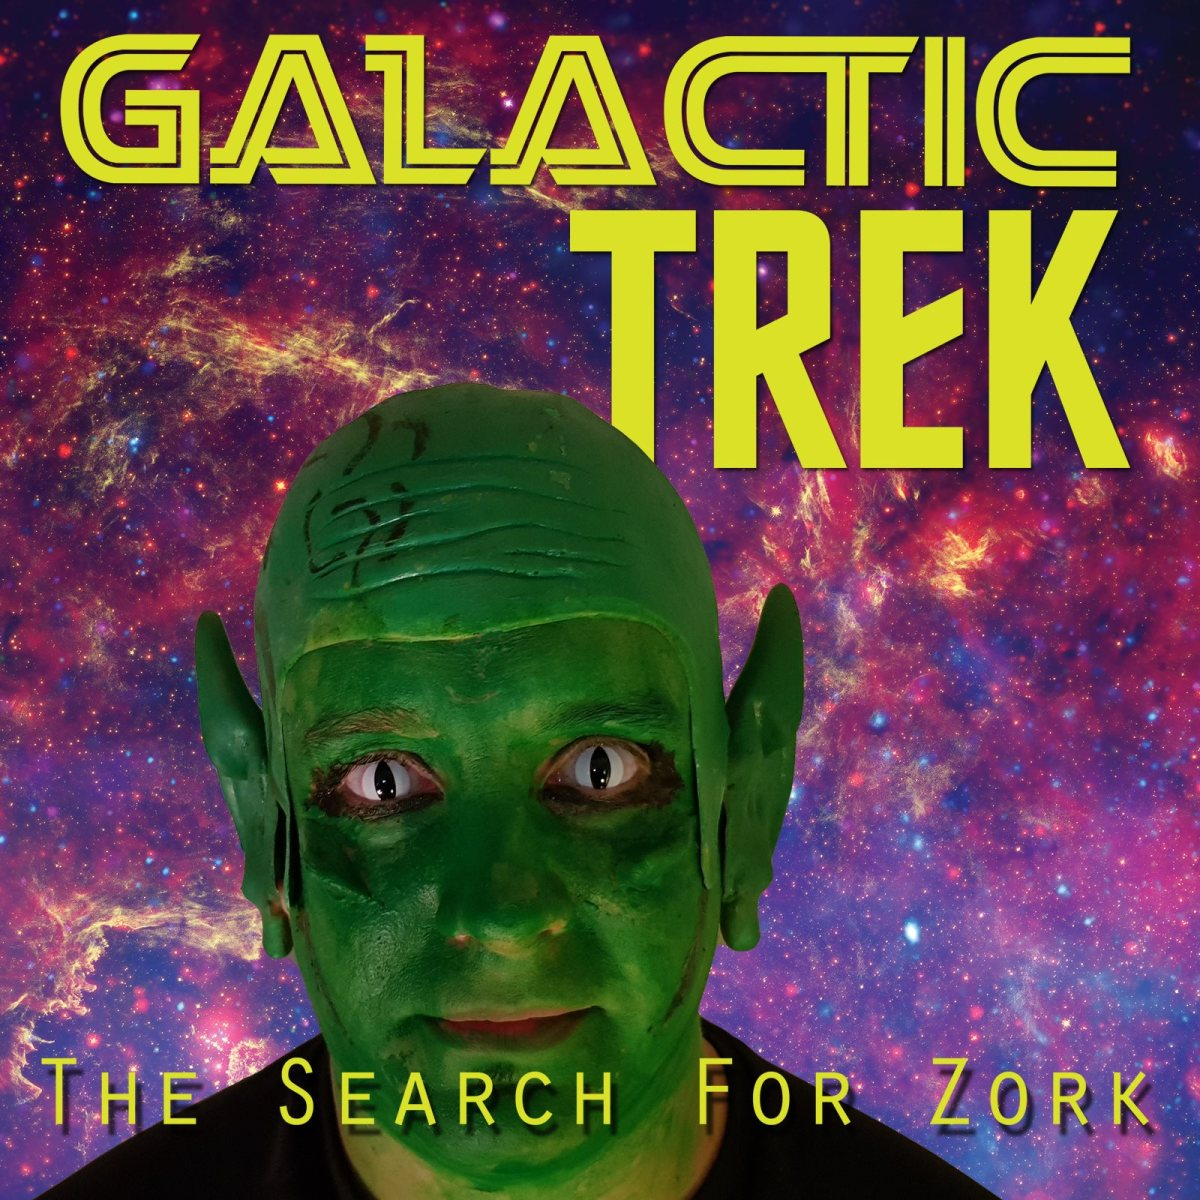 Galactic Trek: The Search for Zork